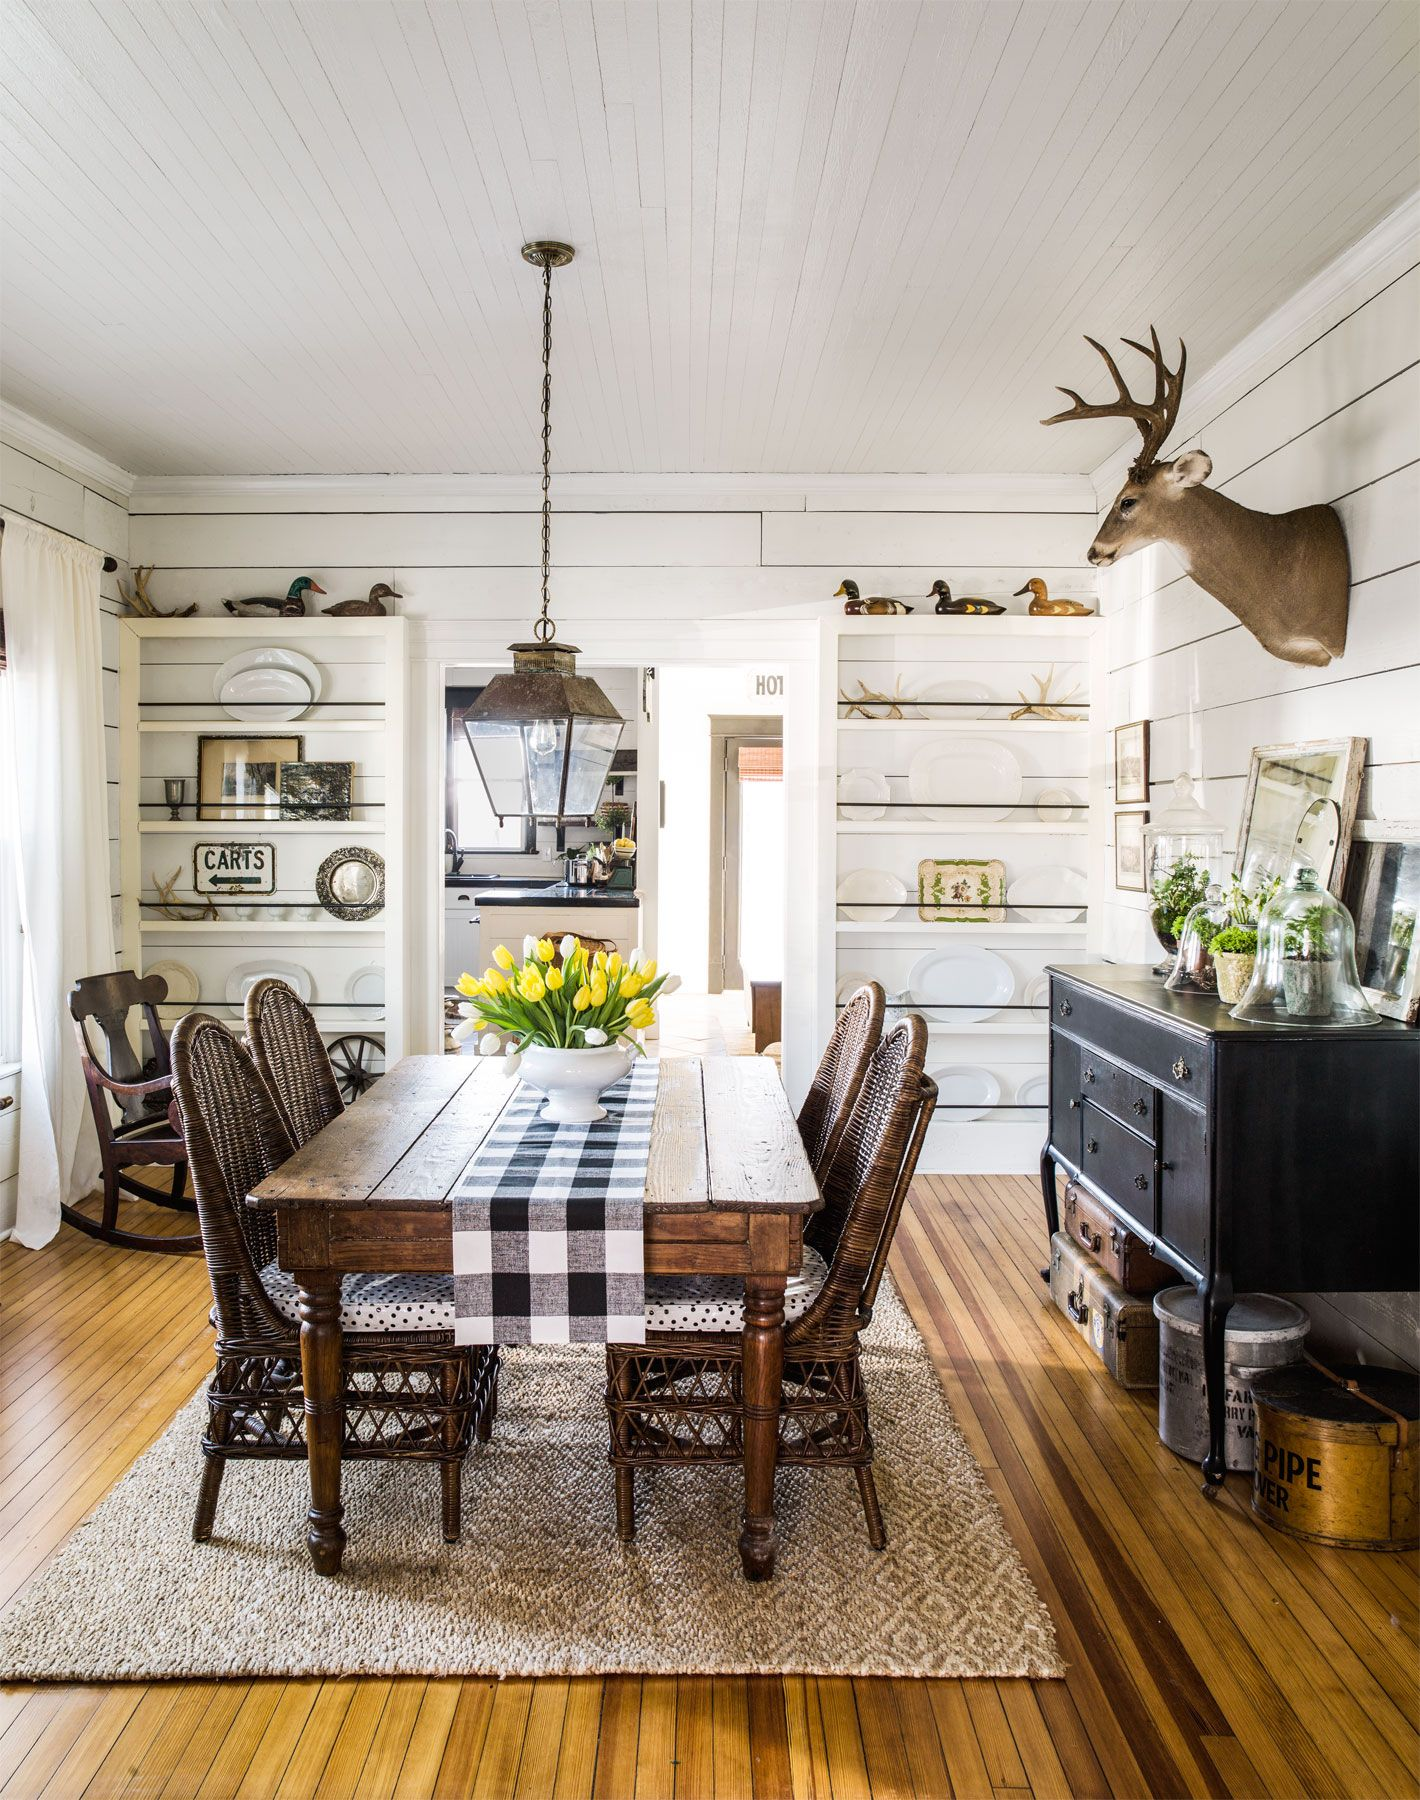 Antique Home Decor Ideas 18 Vintage Decorating Ideas From A 1934 Farmhouse Dining